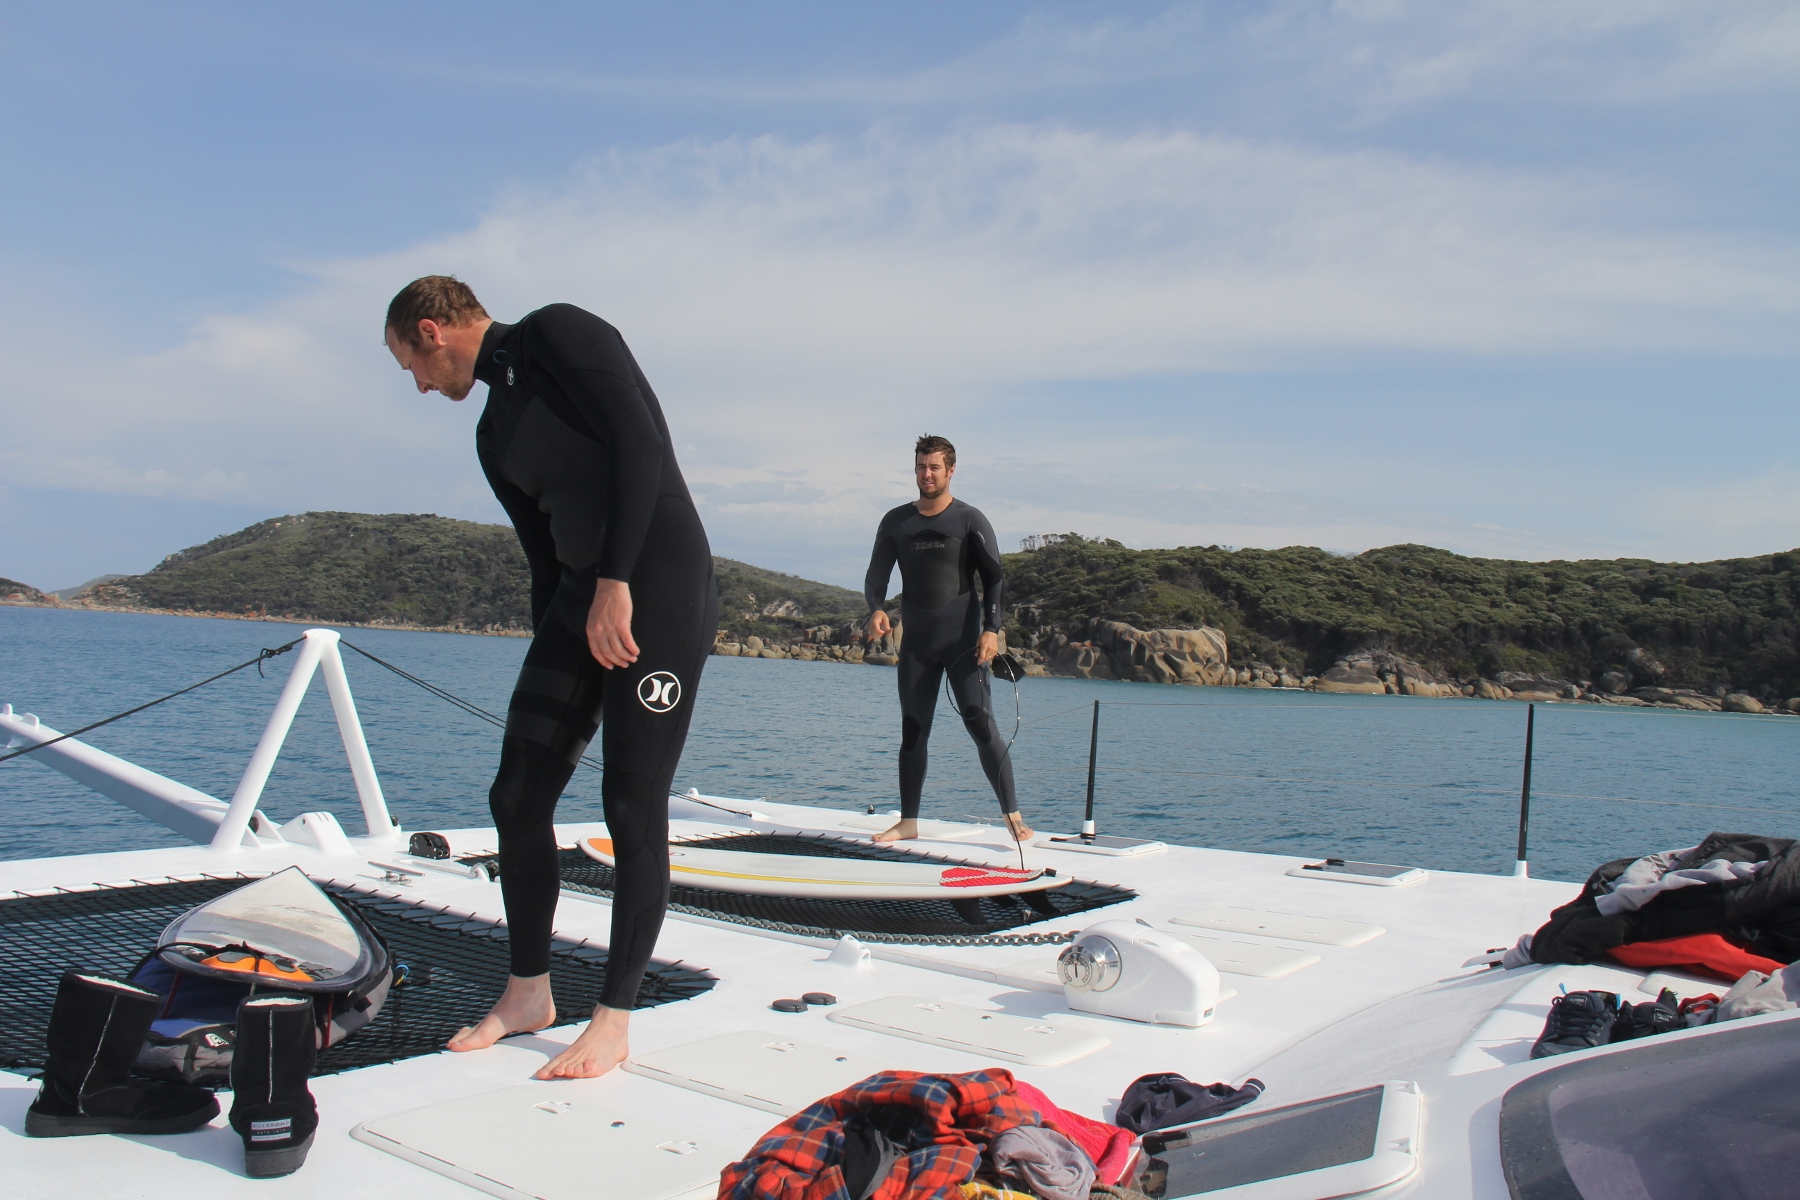 Benn and Roland getting set to catch a wave in Victorian waters .